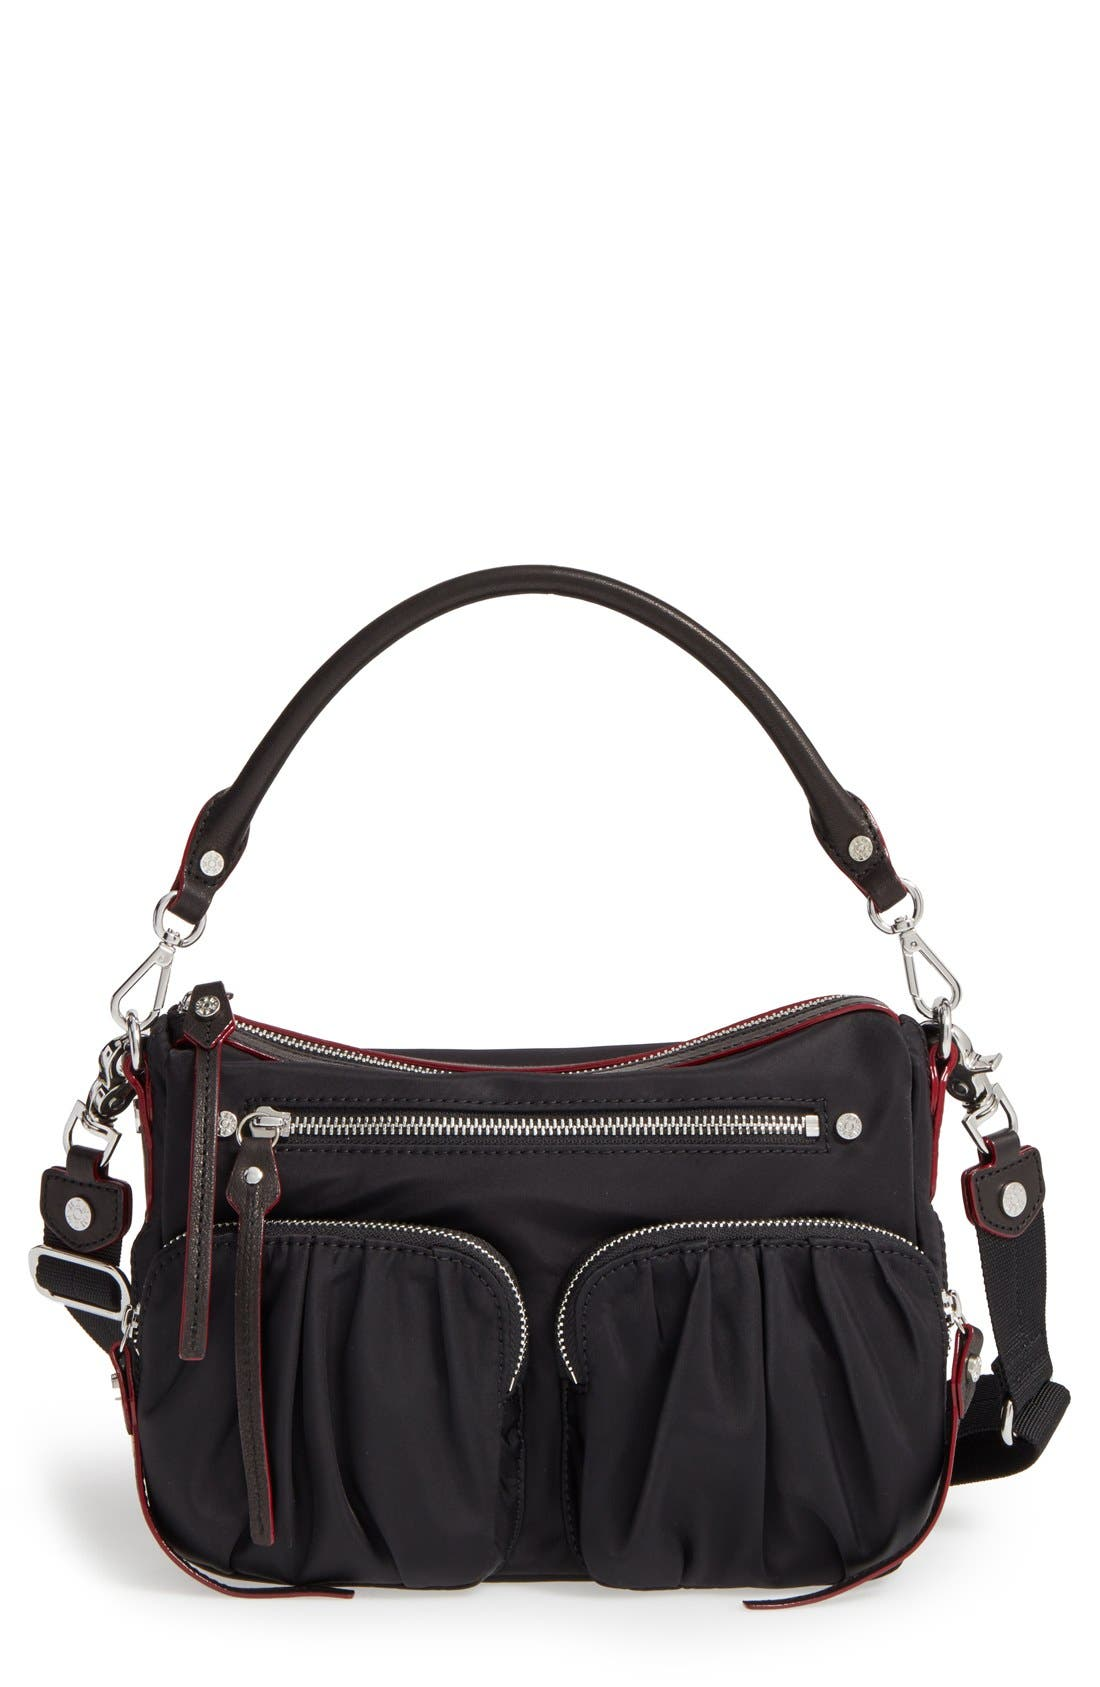 Alternate Image 1 Selected - MZ Wallace 'Bailey' Bedford Nylon Tote